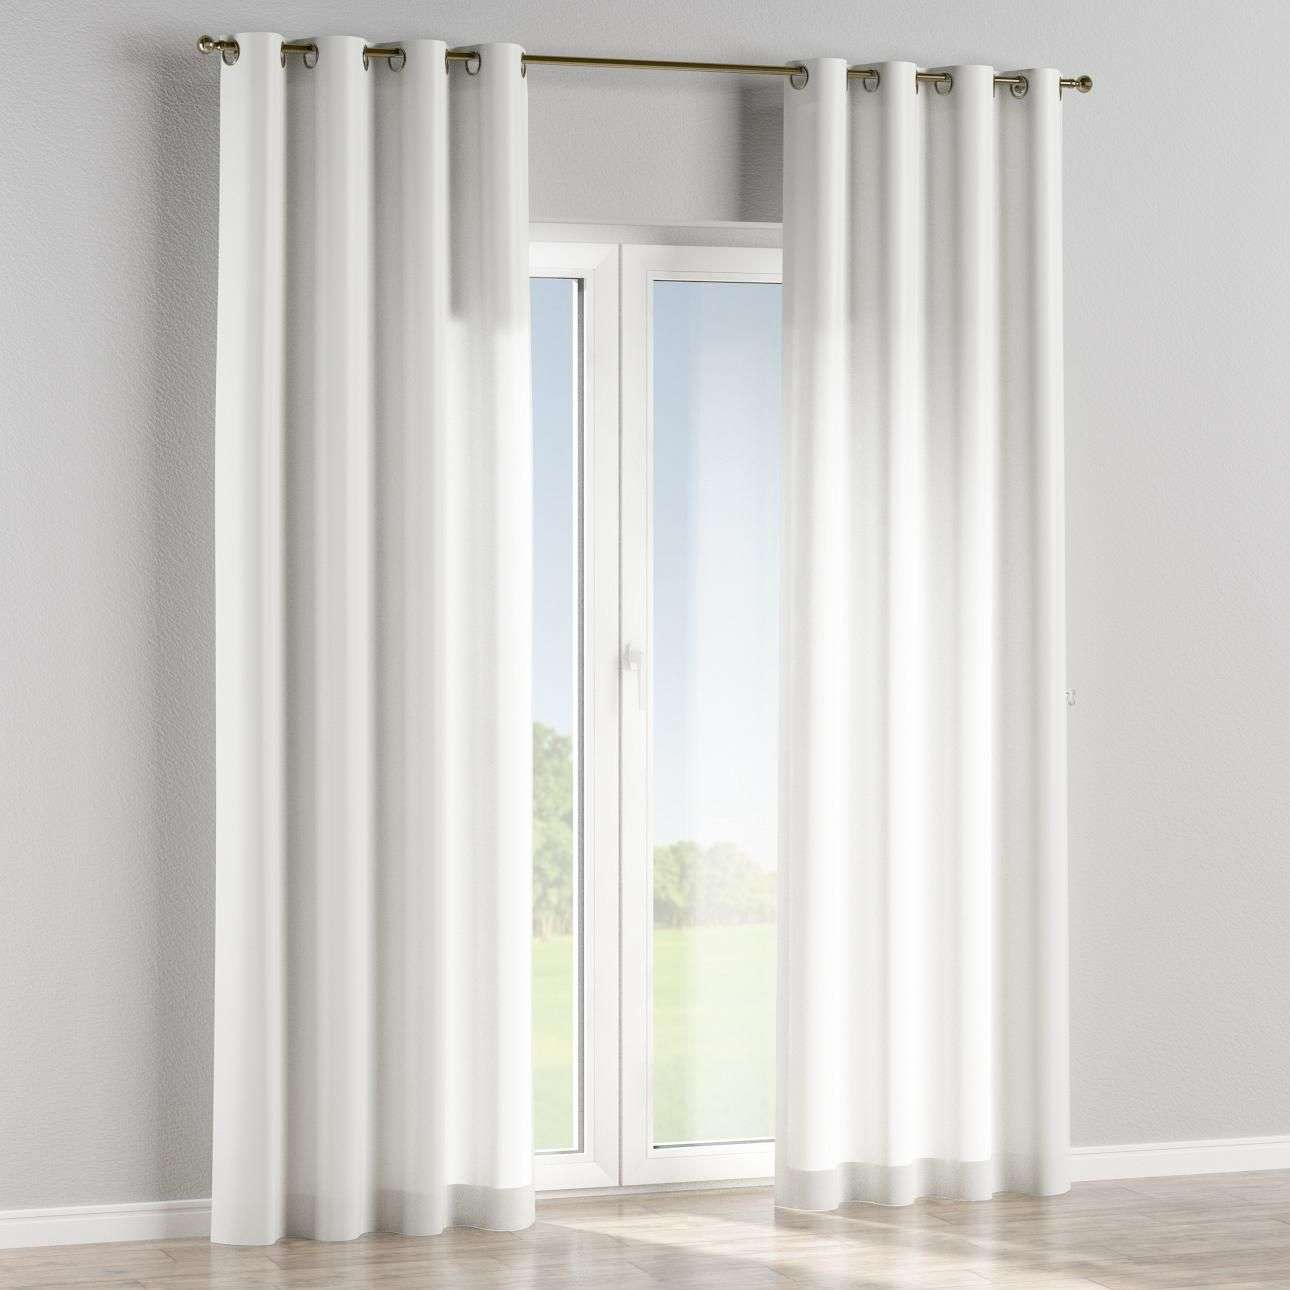 Eyelet curtains in collection Romantica, fabric: 128-07